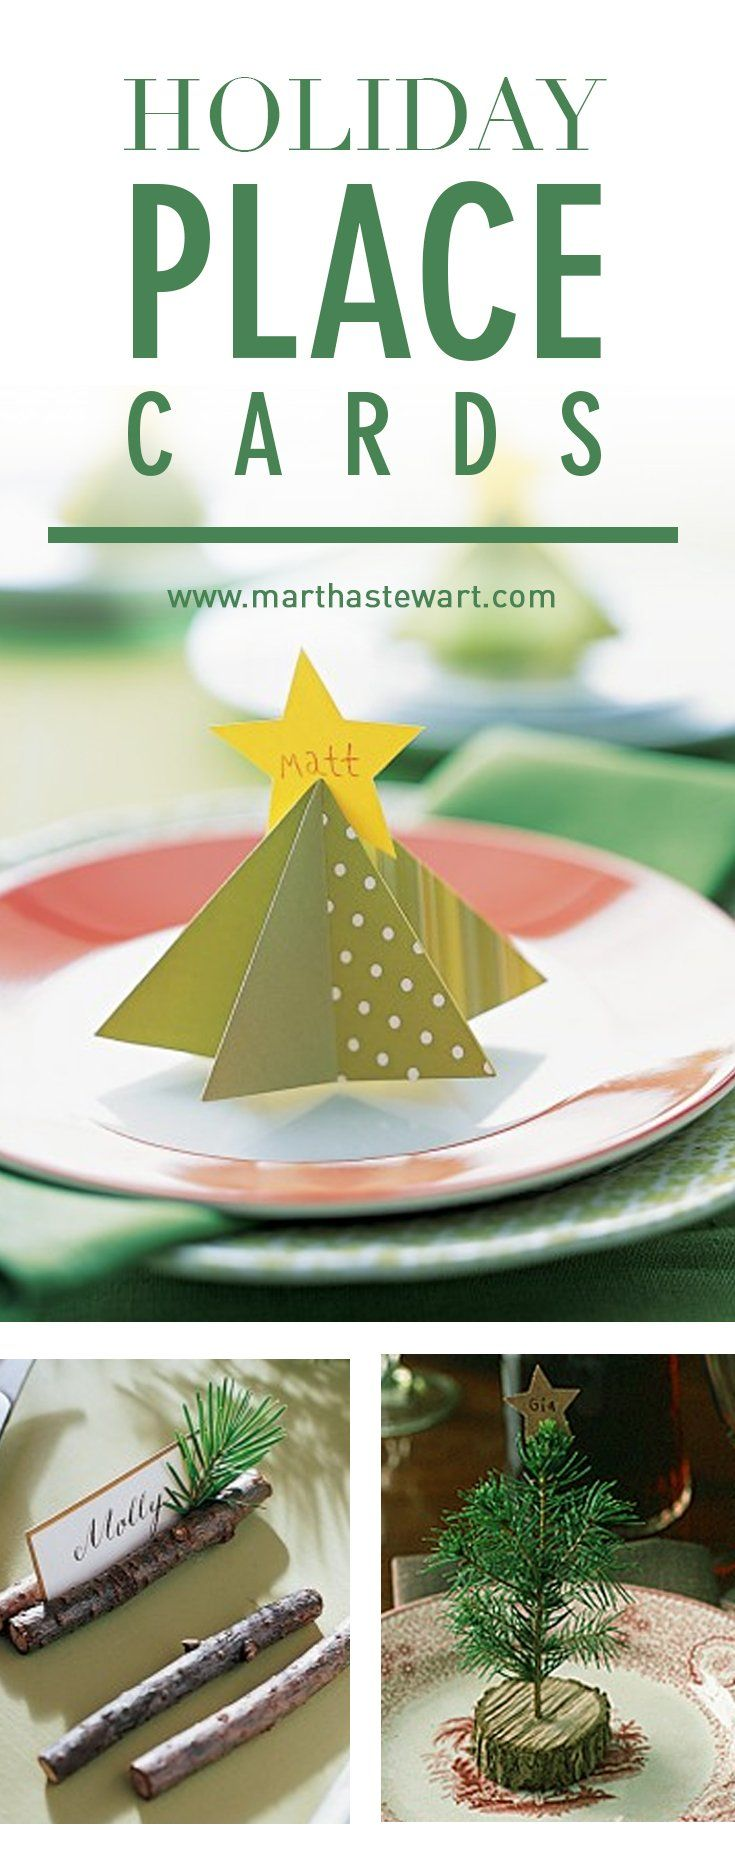 Set your table for a holiday get-together with our homemade place cards, including paper-plate angels, evergreen place-card holders, and more.